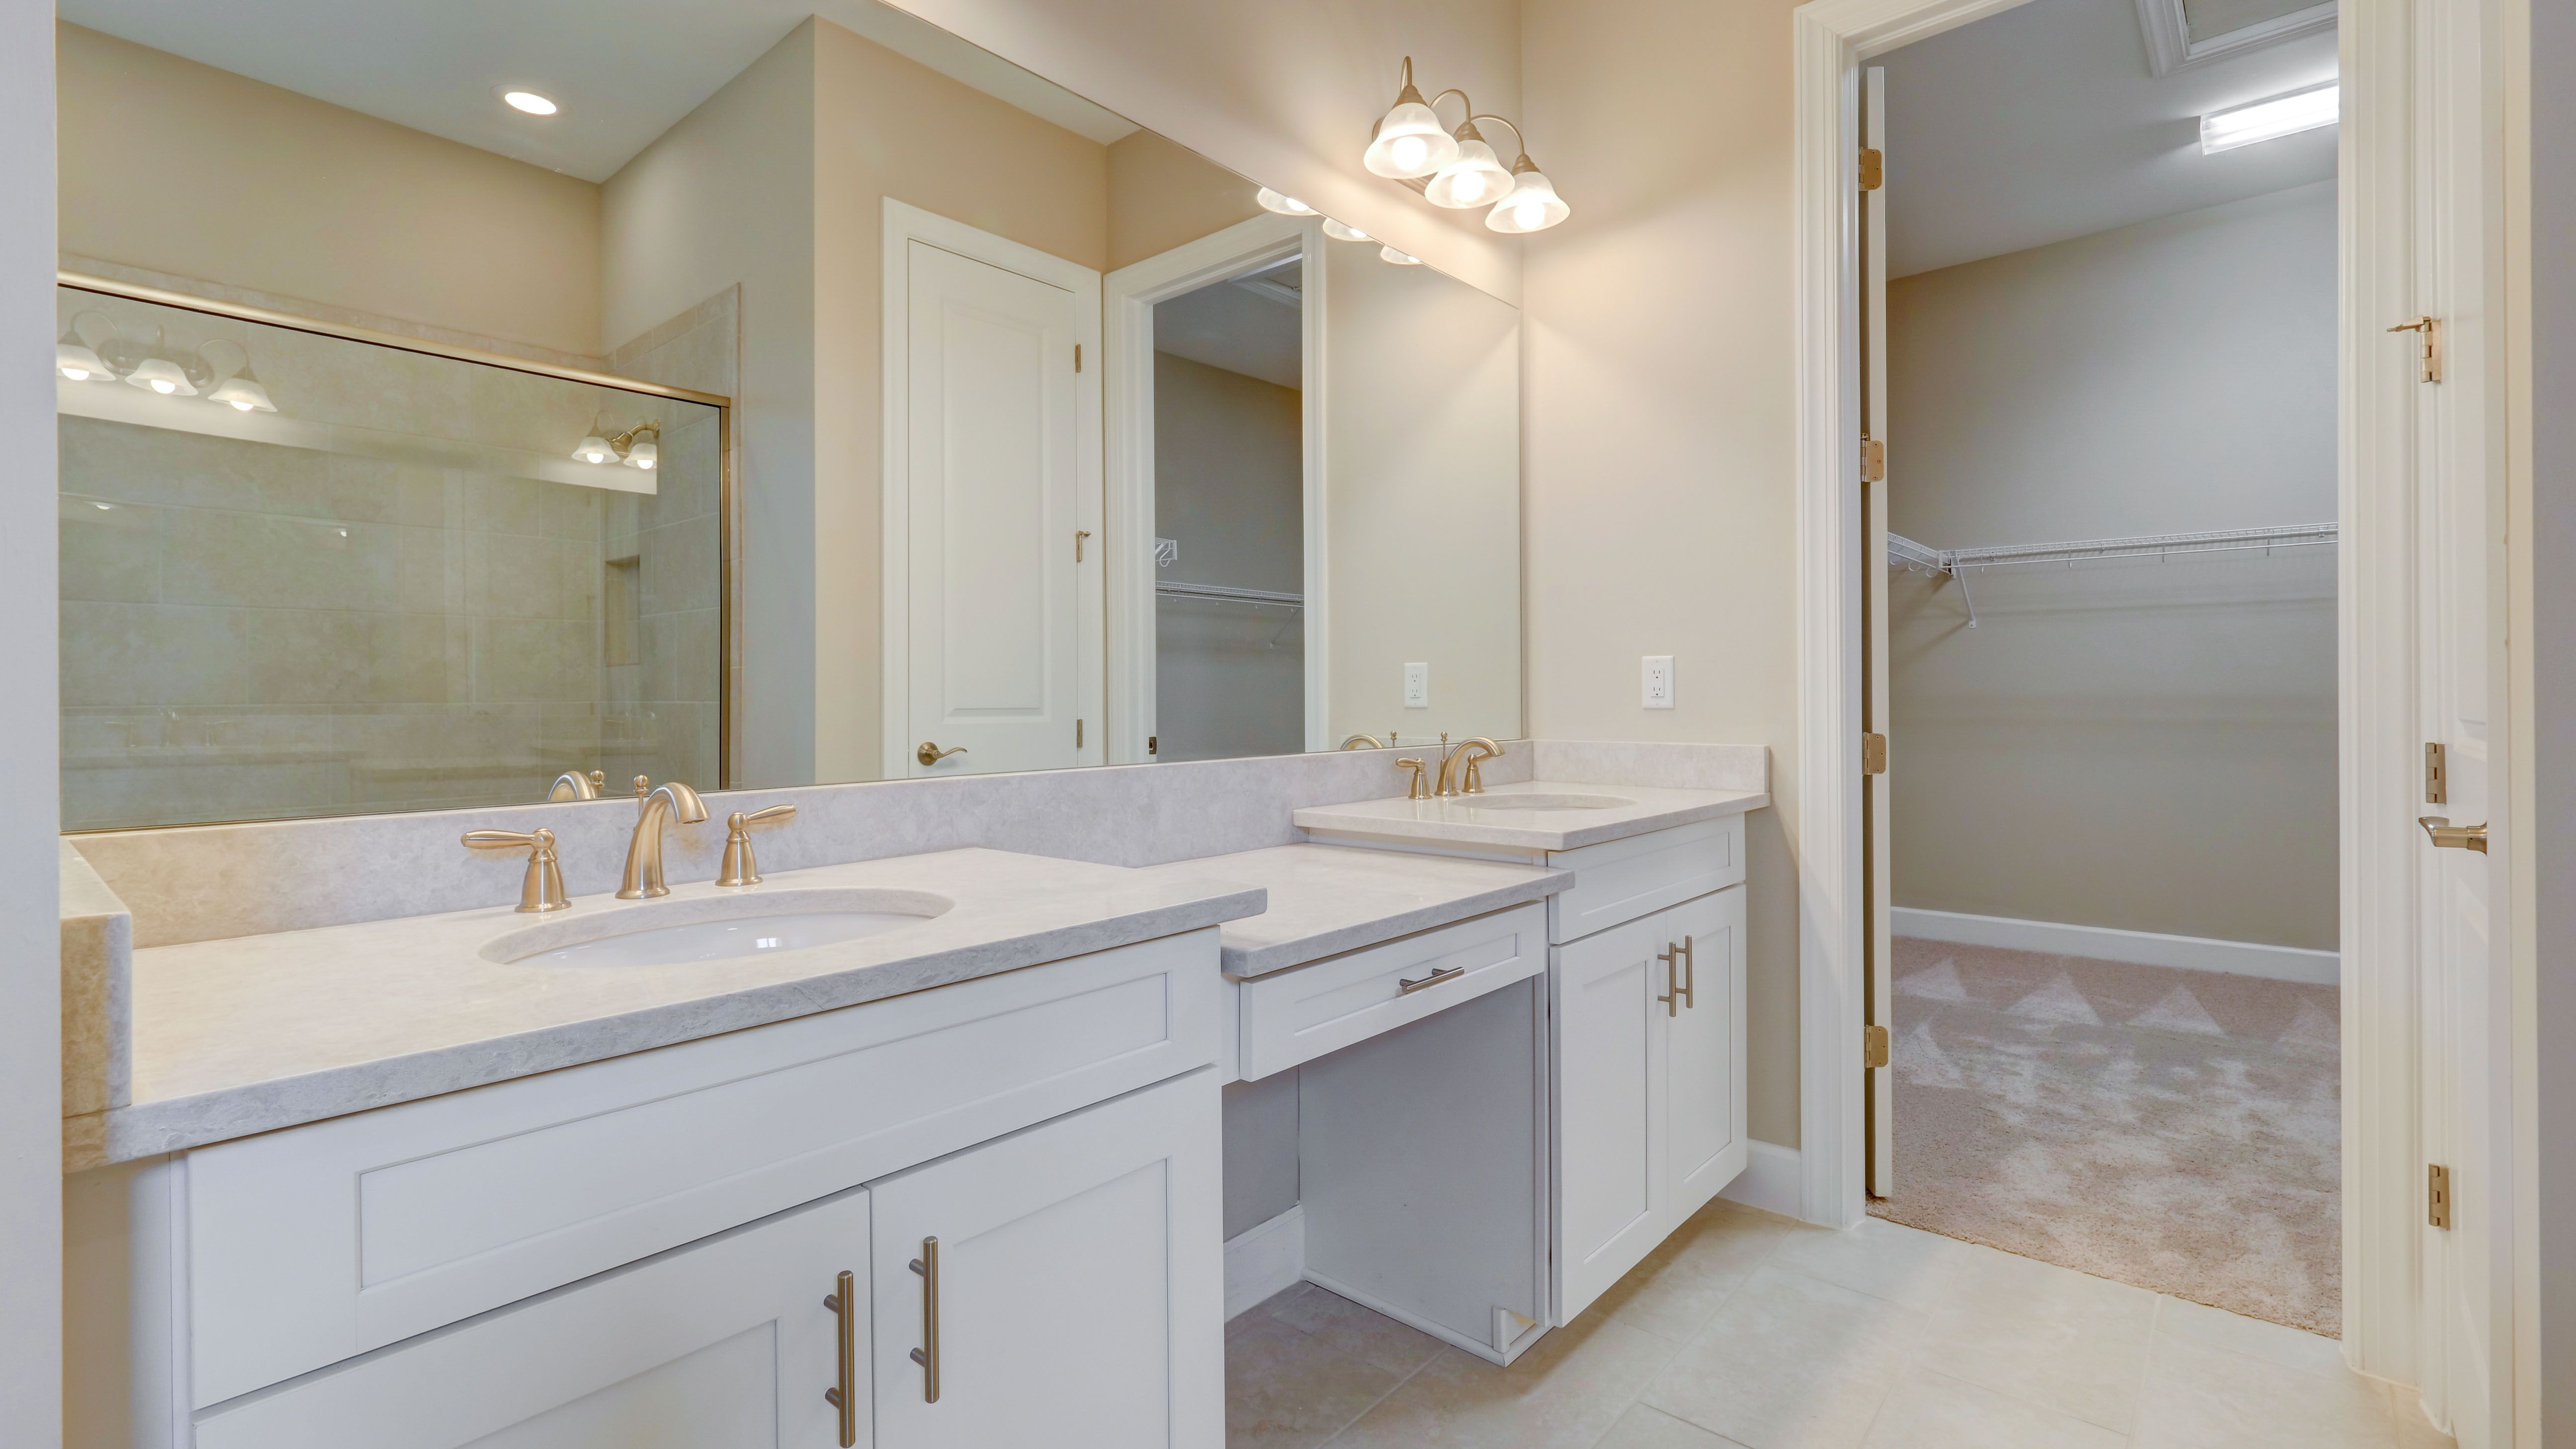 Bathroom featured in the Lazio Plan By Taylor Morrison in Naples, FL